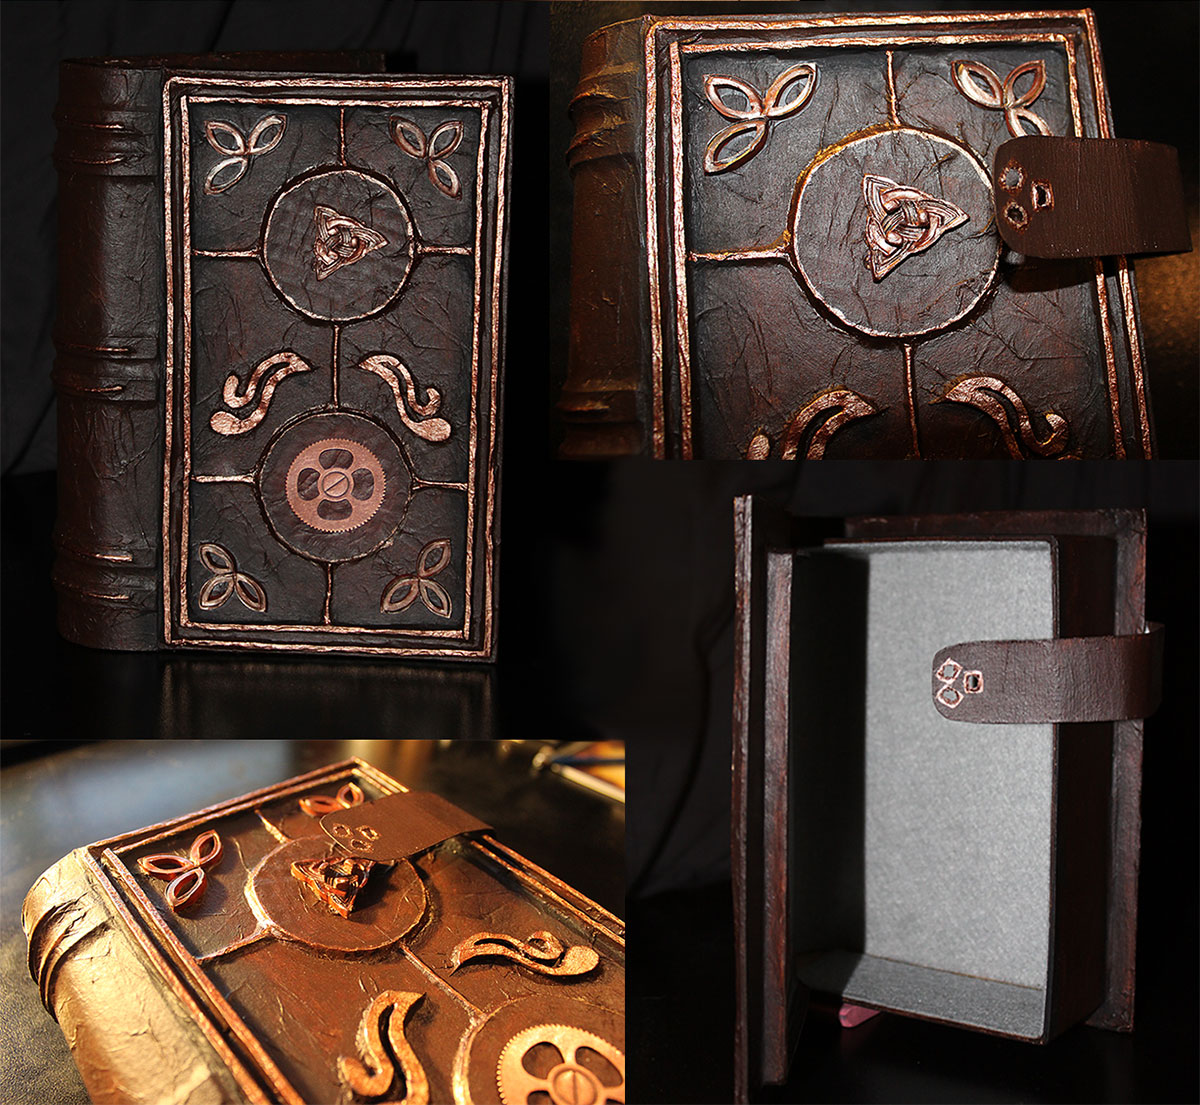 Secret Compartment Book Safes made from cardboard, felt, clay creations, charms, steampunk trinkets, and key and clock parts